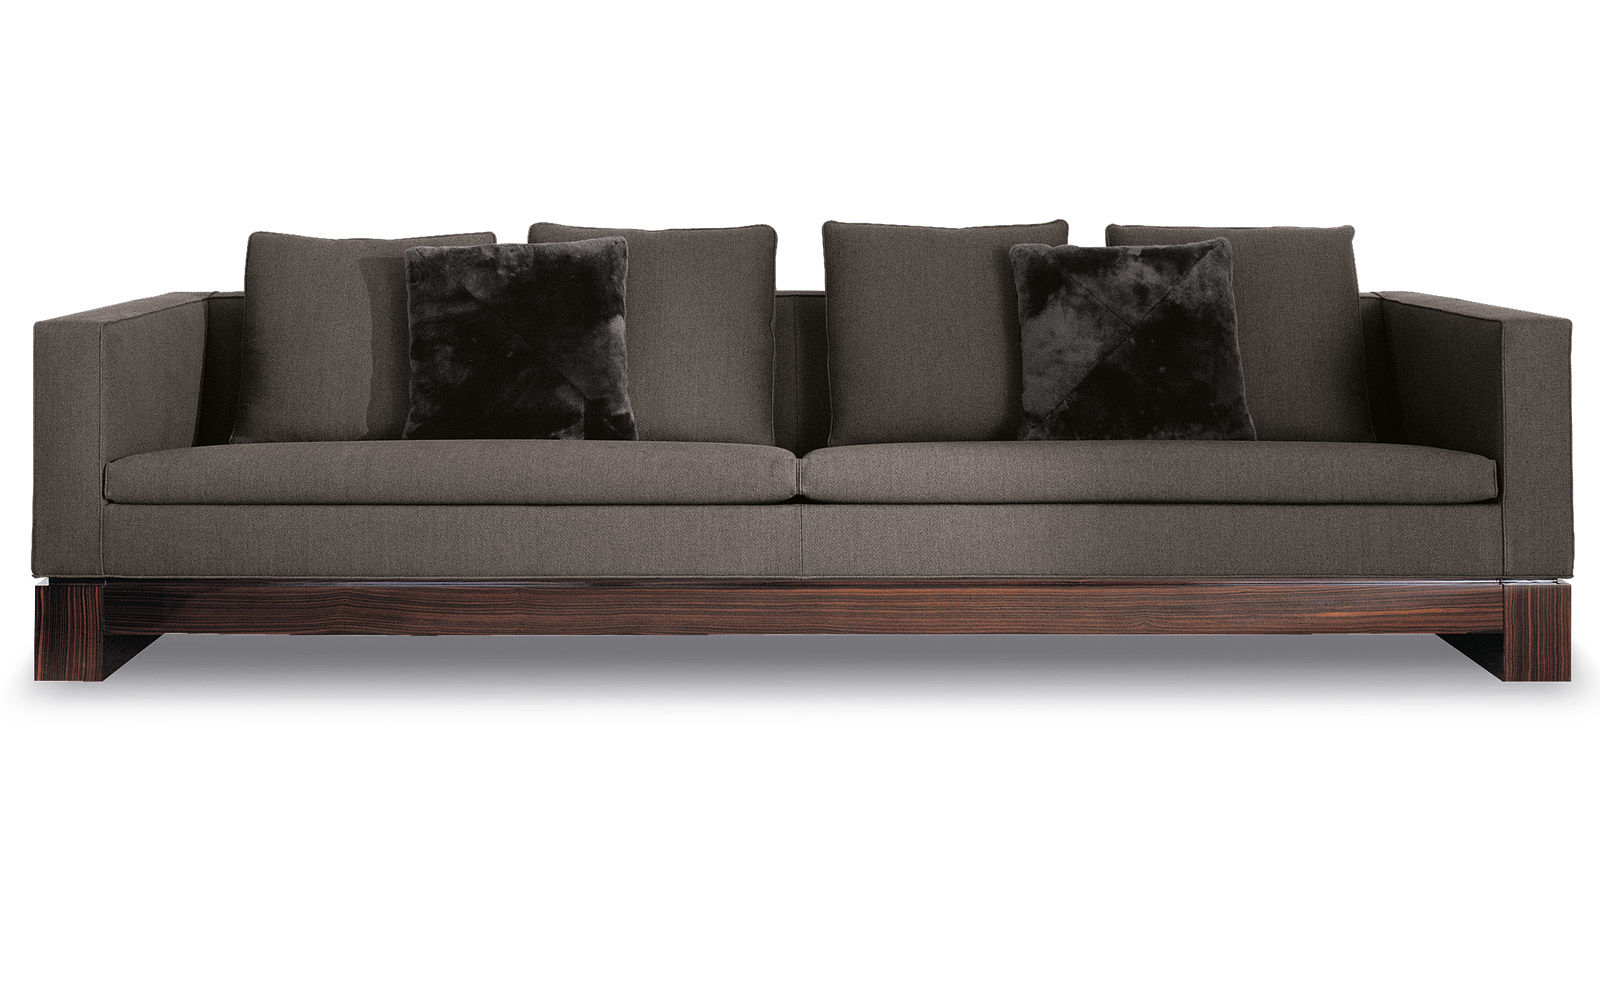 alcantara leder sofa. Black Bedroom Furniture Sets. Home Design Ideas